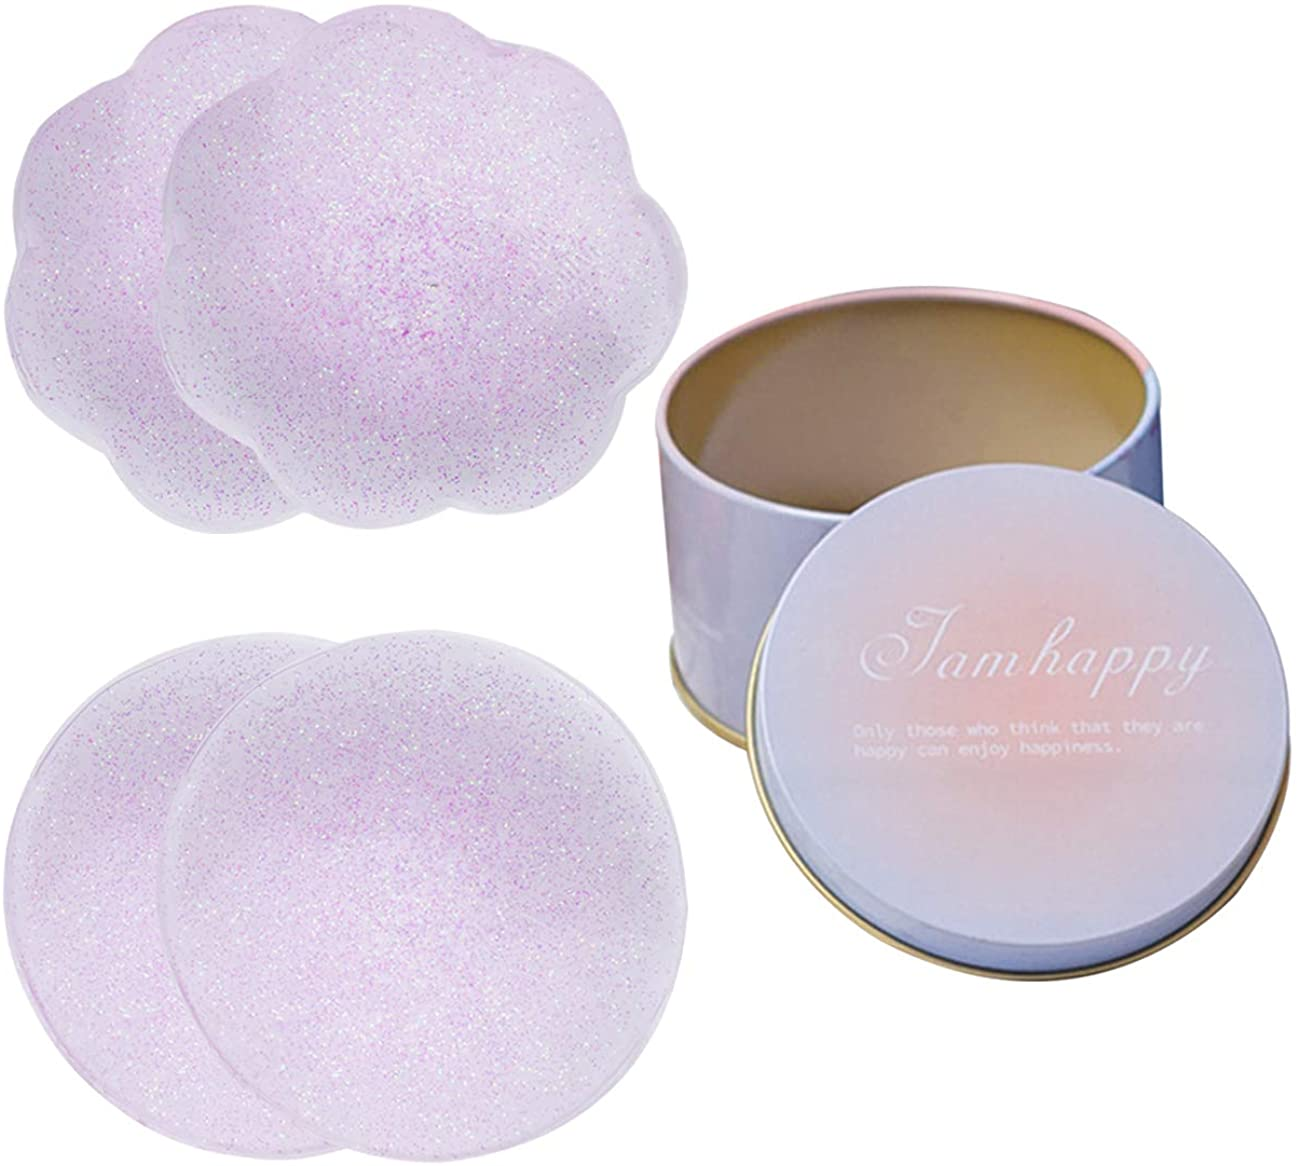 Silicone Nipple Covers - 2 Pairs,Women's Reusable Nippleless Pasties Breast Round Invisible